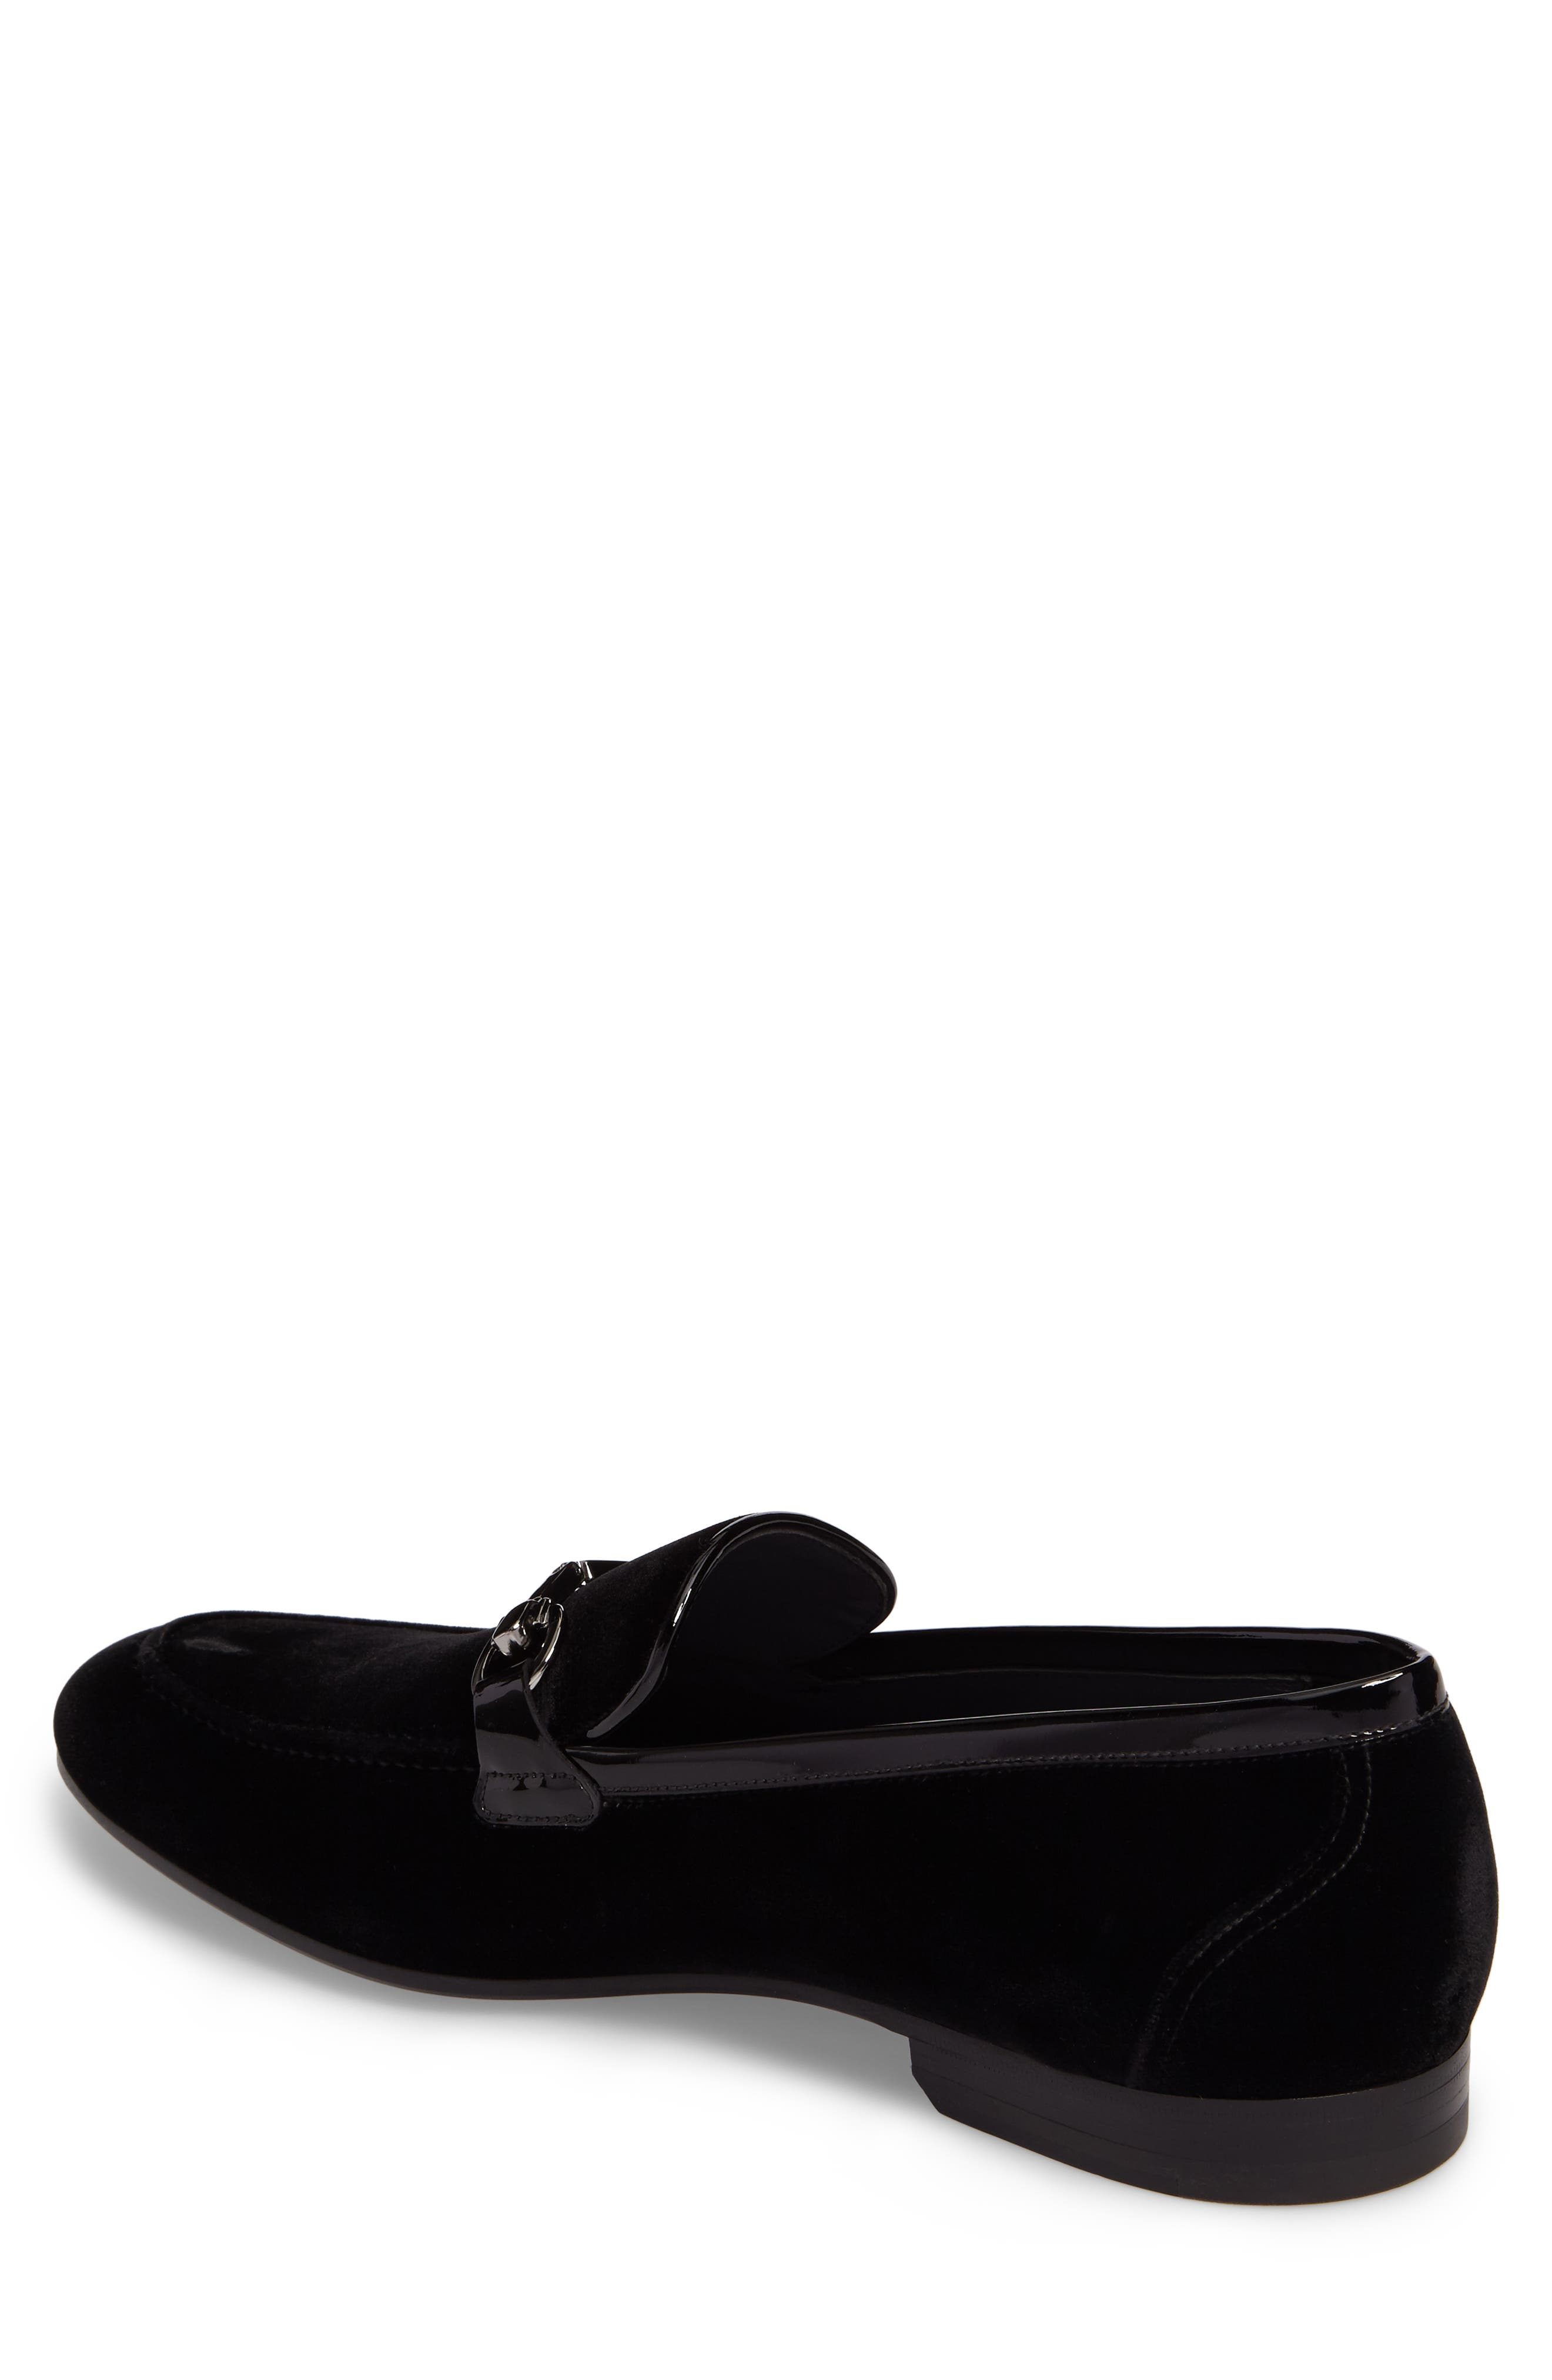 Brianza Bit Loafer,                             Alternate thumbnail 9, color,